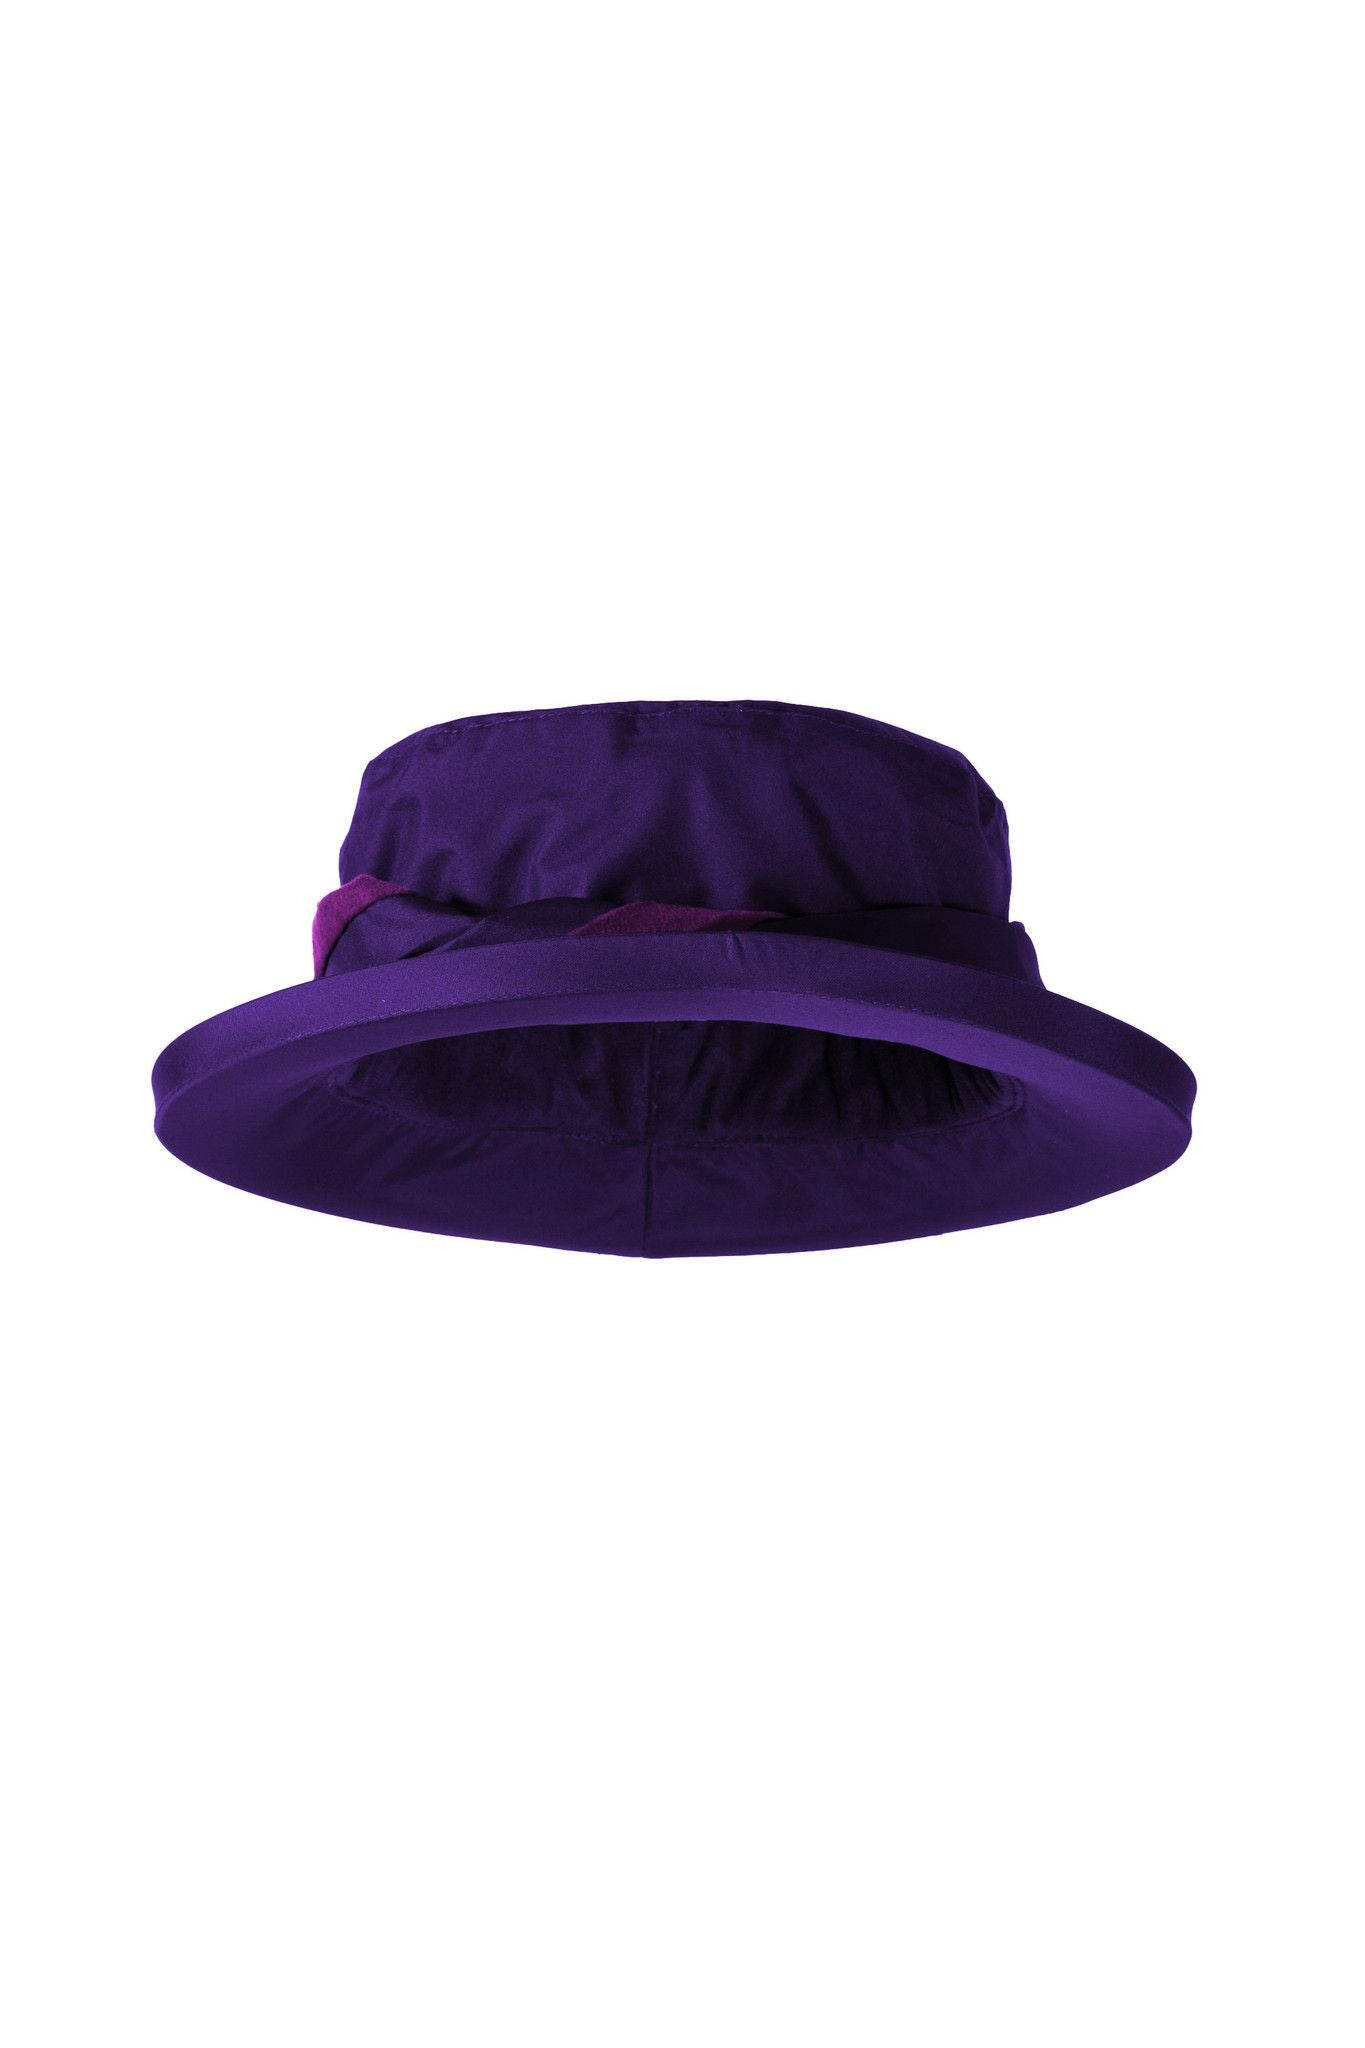 Target Dry Canterbury 2 Lined Waterproof Cloche Rain Hat for Women 947505bf7a6